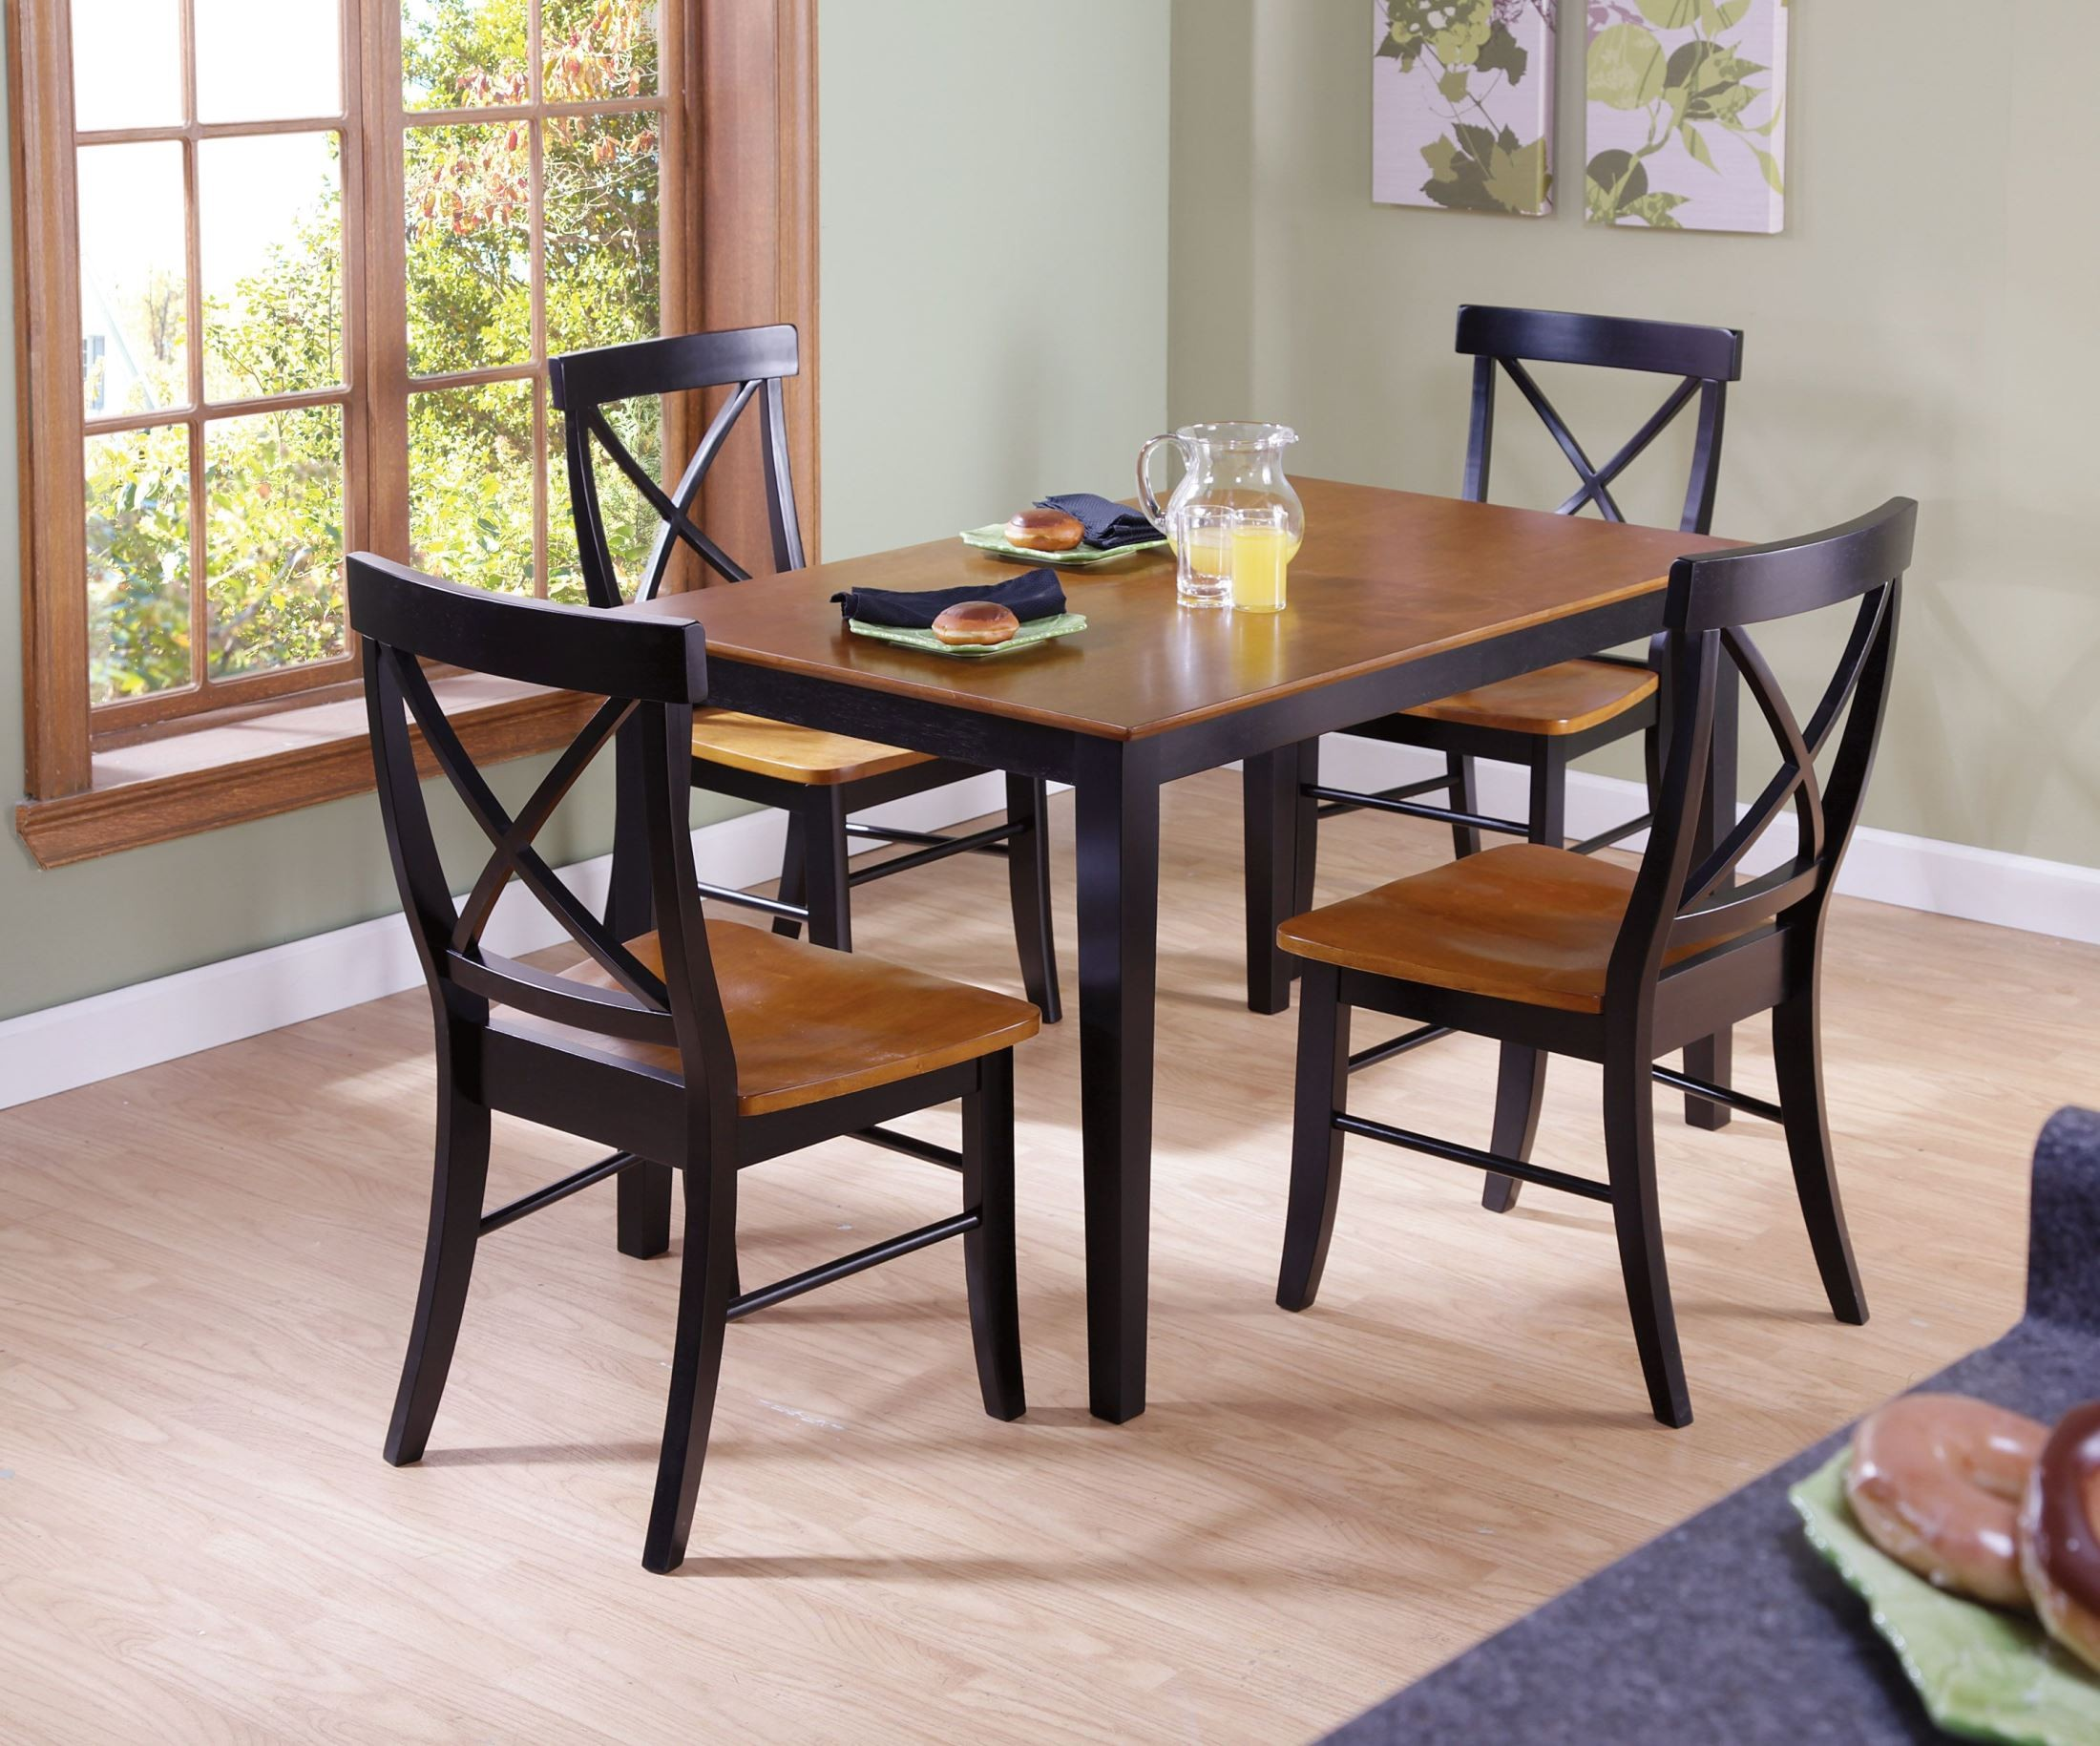 Black And Cherry Dining Table Black And Cherry Dining  : t57 3048tt46 30sc57 6132 from amlibgroup.com size 2200 x 1829 jpeg 583kB